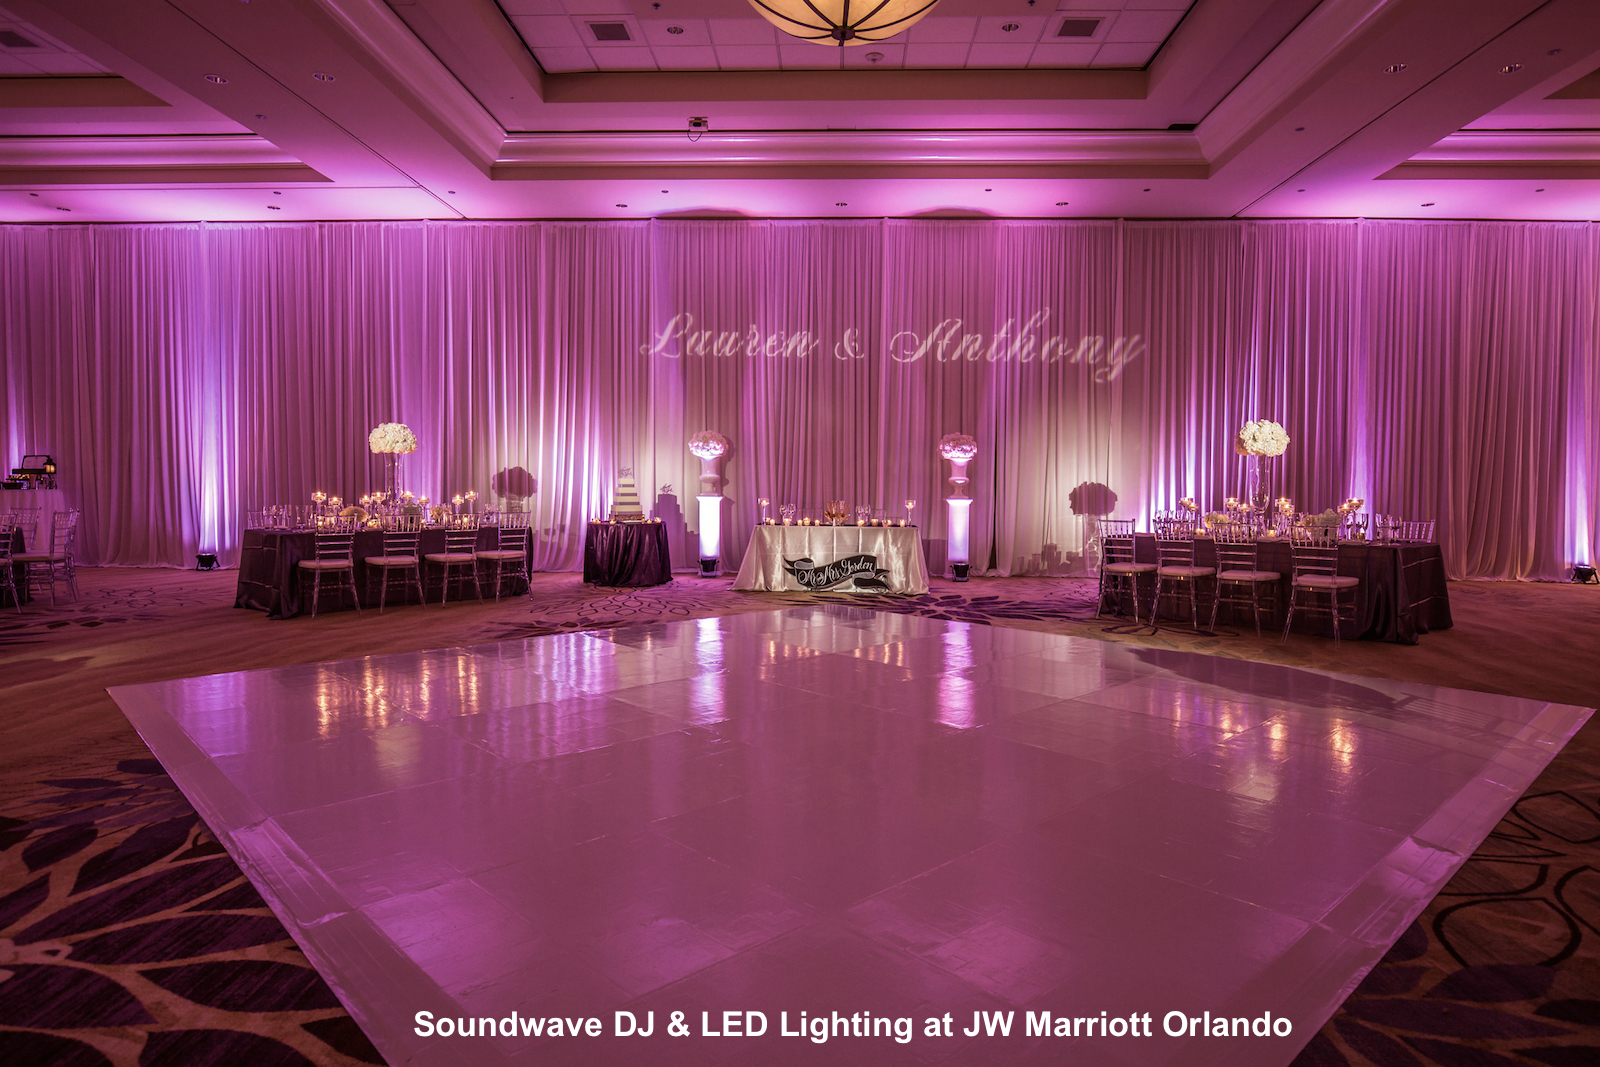 JW Marriott Orlando - orlando wedding venue - soundwave entertainment - orlando, fl